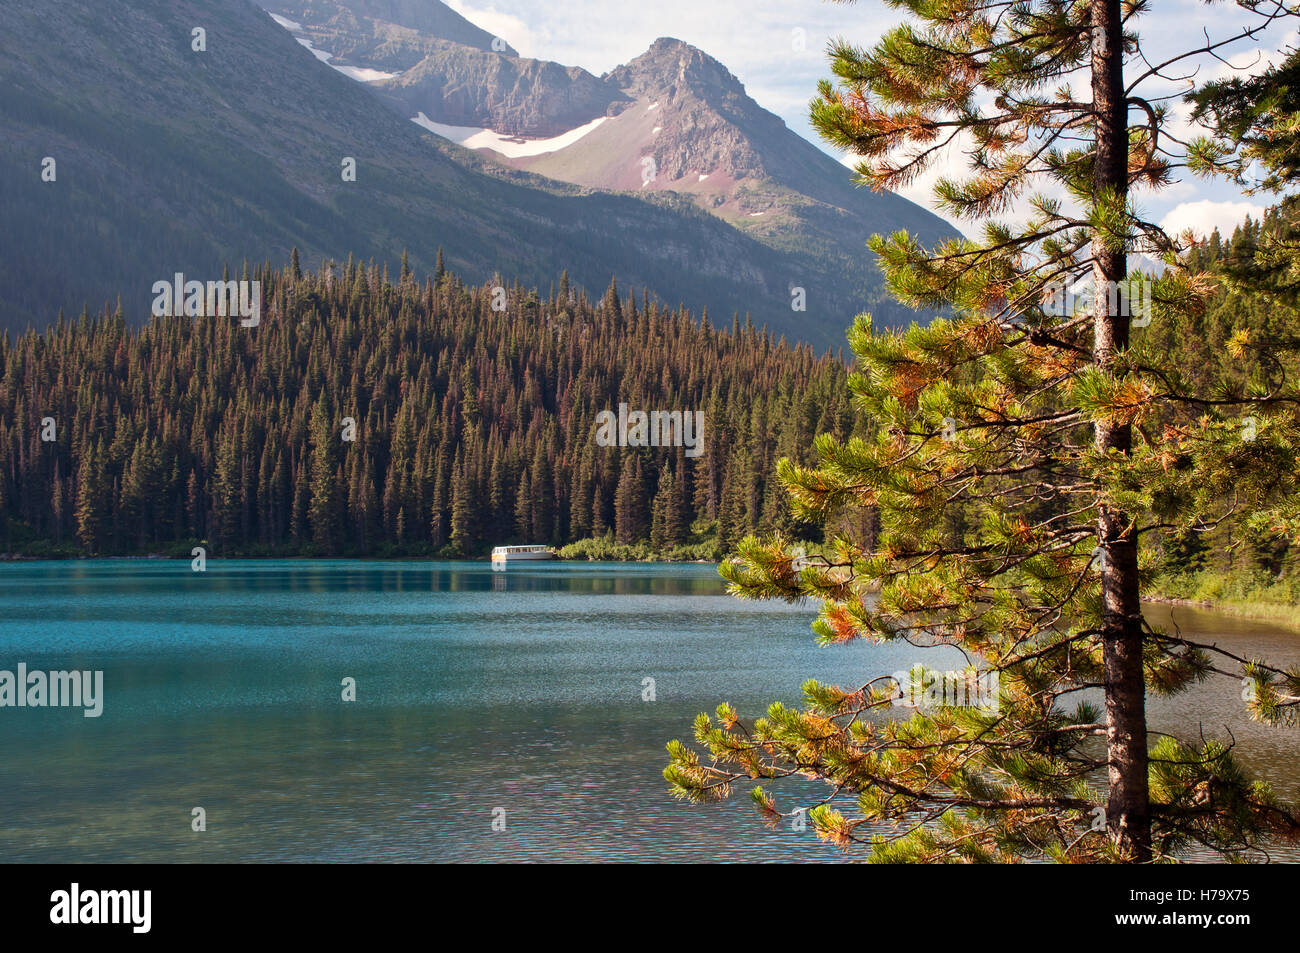 Swift current lake in Glacier National Park, Montana, USA - Stock Image